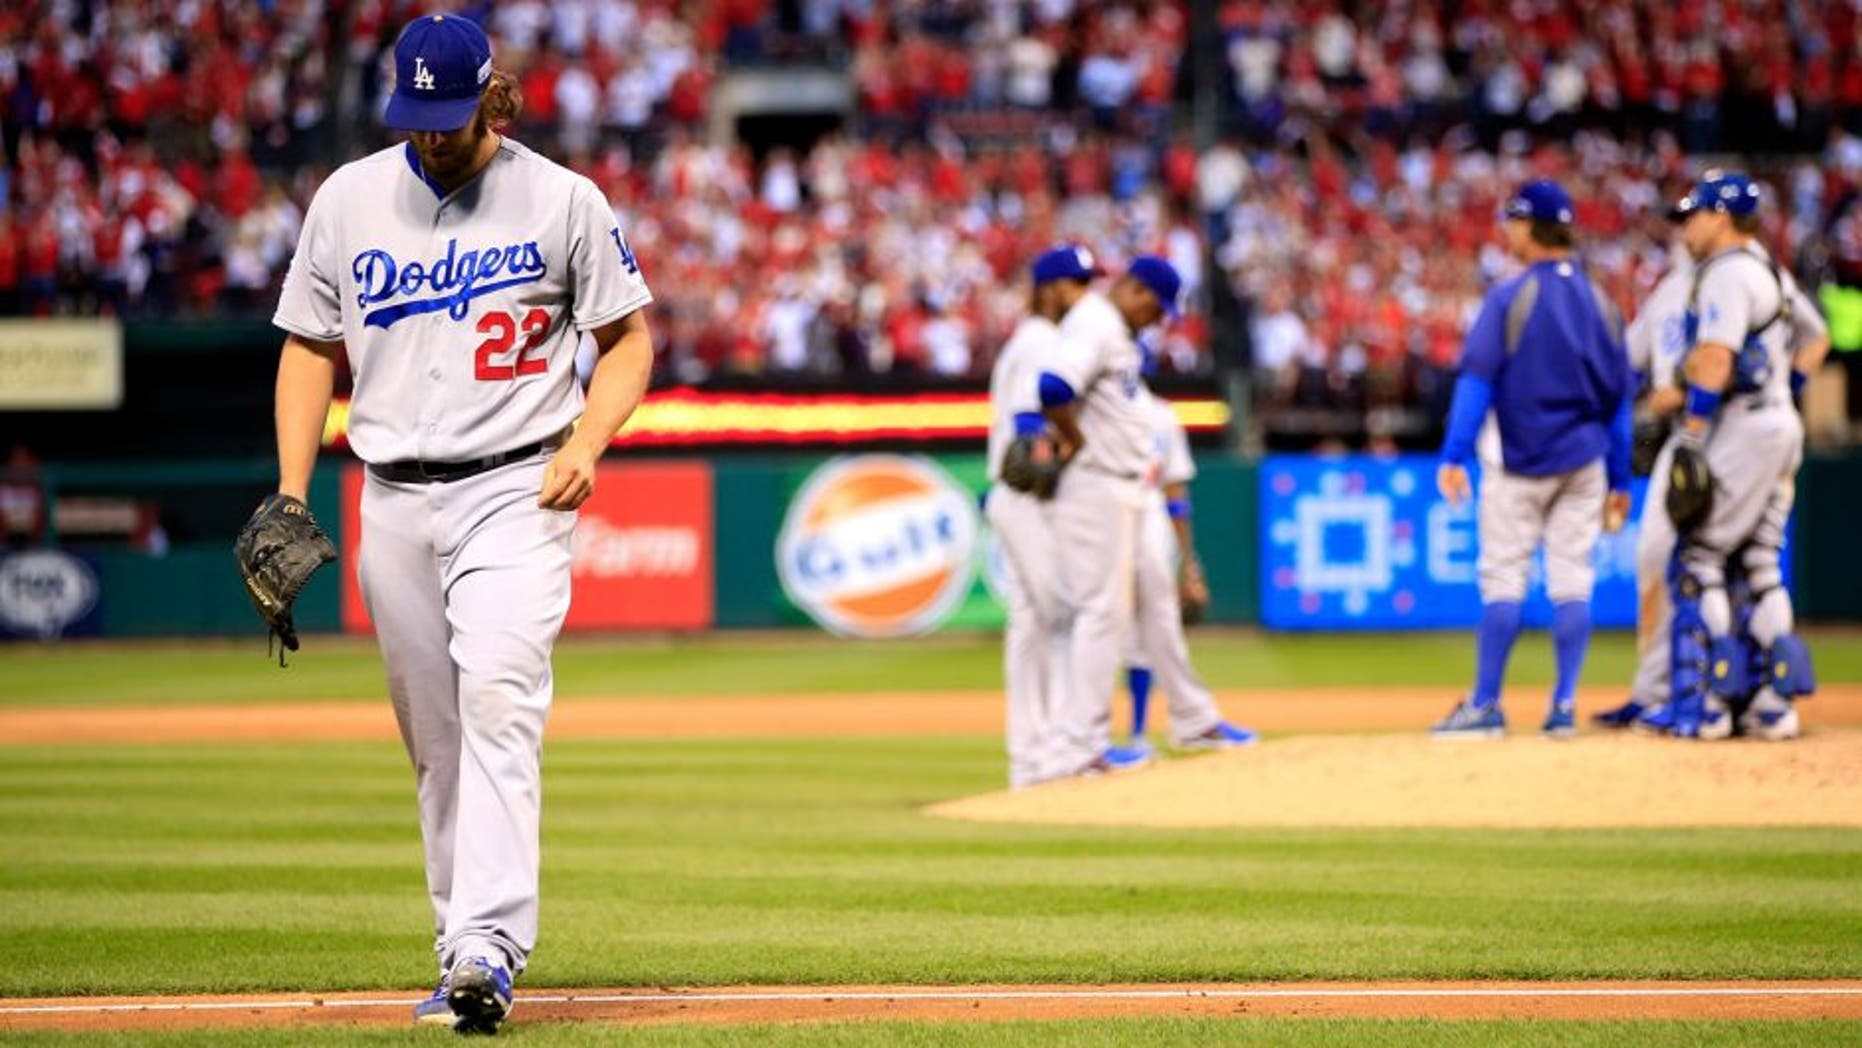 ST LOUIS, MO - OCTOBER 07: Clayton Kershaw #22 of the Los Angeles Dodgers exits the game in the seventh inning after giving up a three run home run against the St. Louis Cardinals in Game Four of the National League Divison Series at Busch Stadium on October 7, 2014 in St Louis, Missouri. (Photo by Jamie Squire/Getty Images)